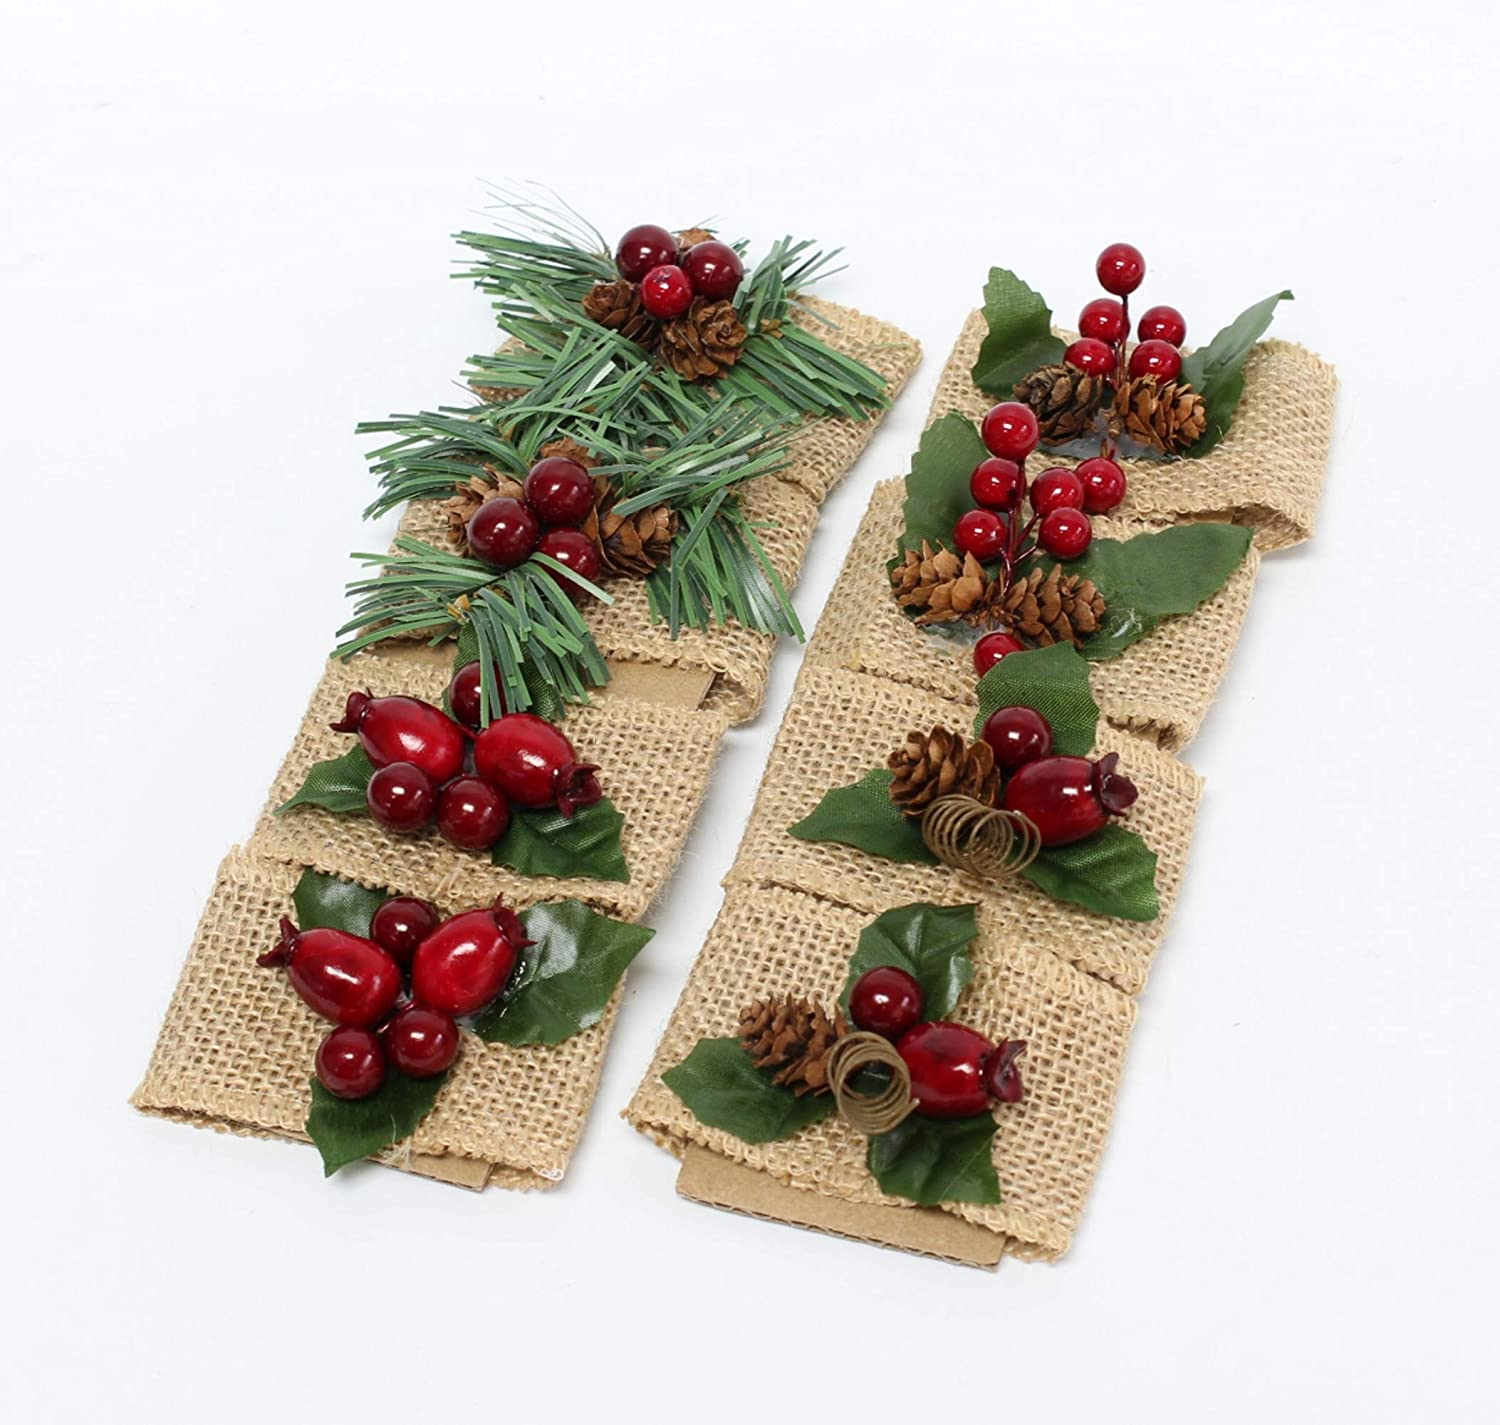 1 x 2 in, 6 Pack Farmlyn Creek Christmas Tree Napkin Rings Set